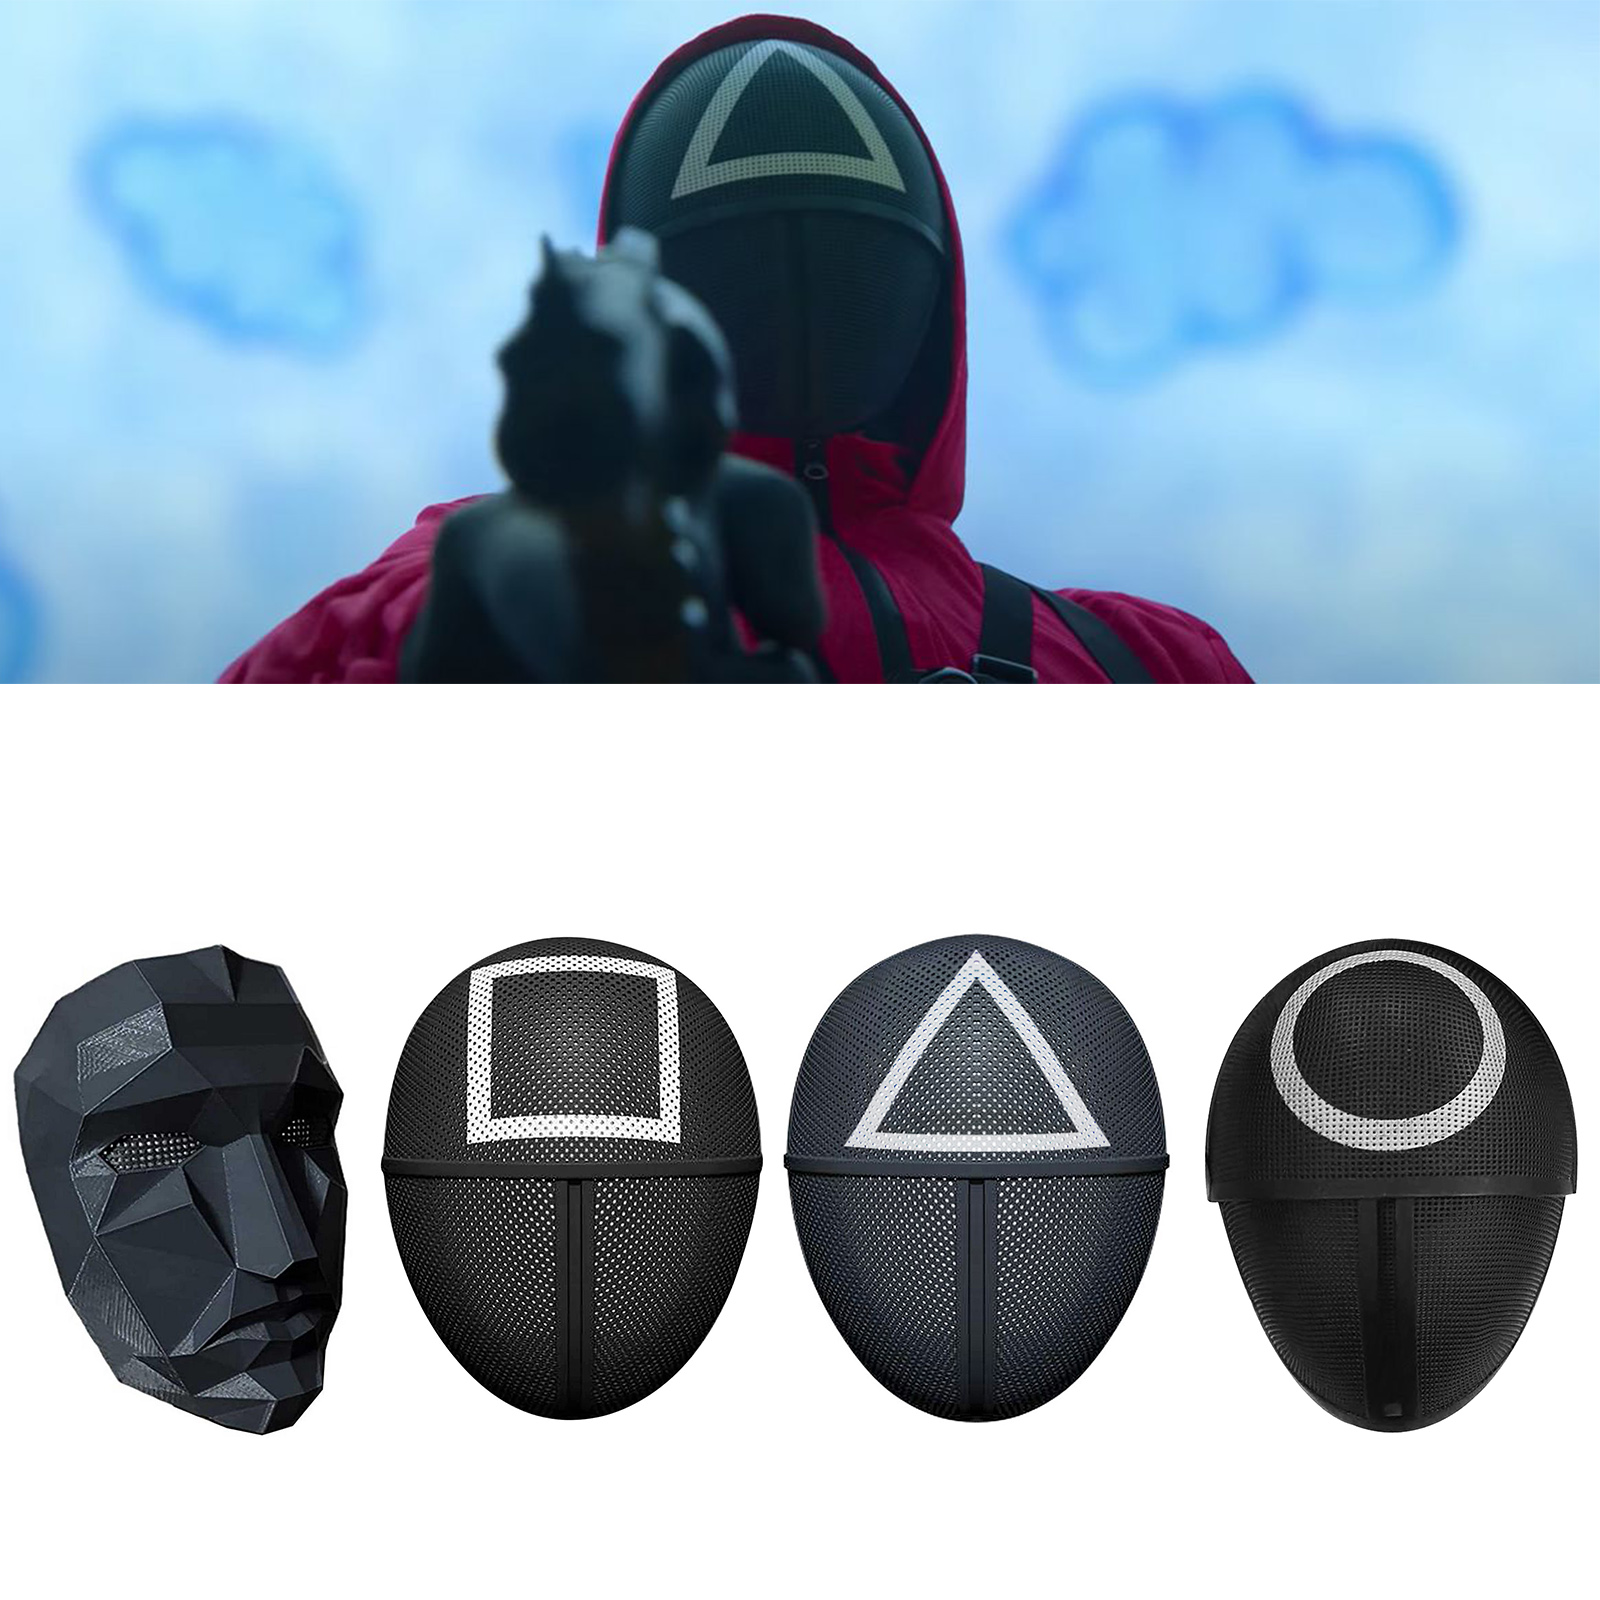 Squid Game Triangle Square Circle Cosplay Plastic Mask Red Hood Man Headgear Boss Costume Props Halloween Cosplay Mondmasker